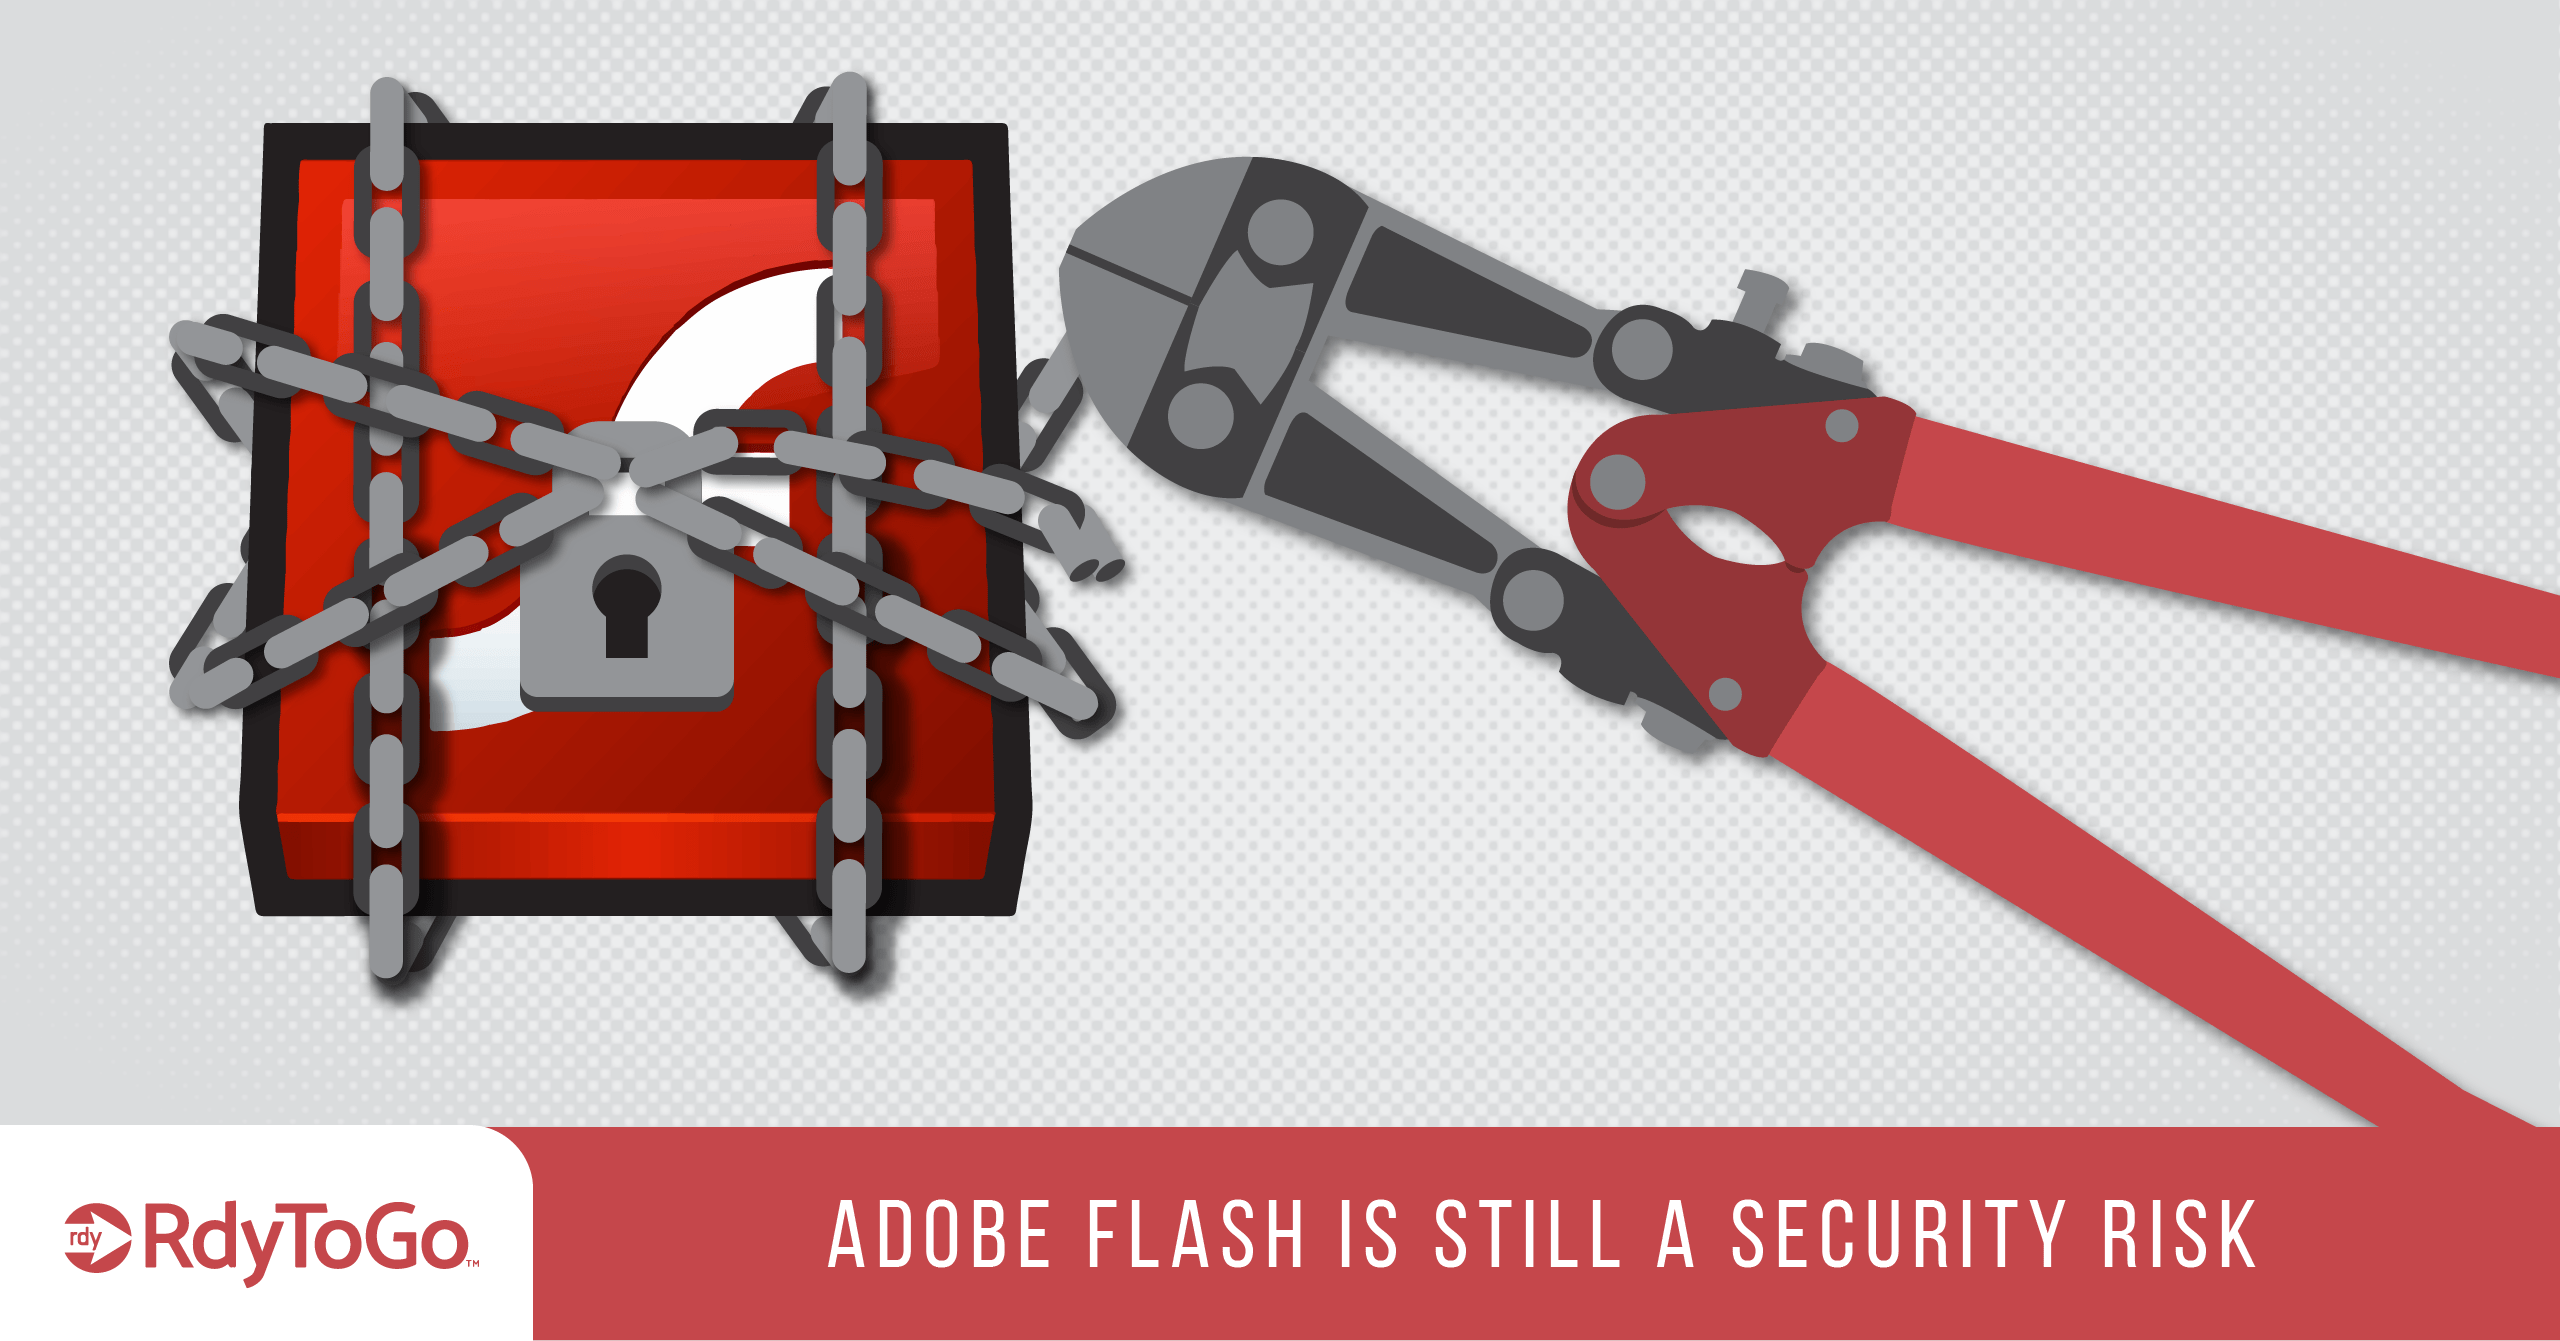 Adobe Flash is Still a Security Risk